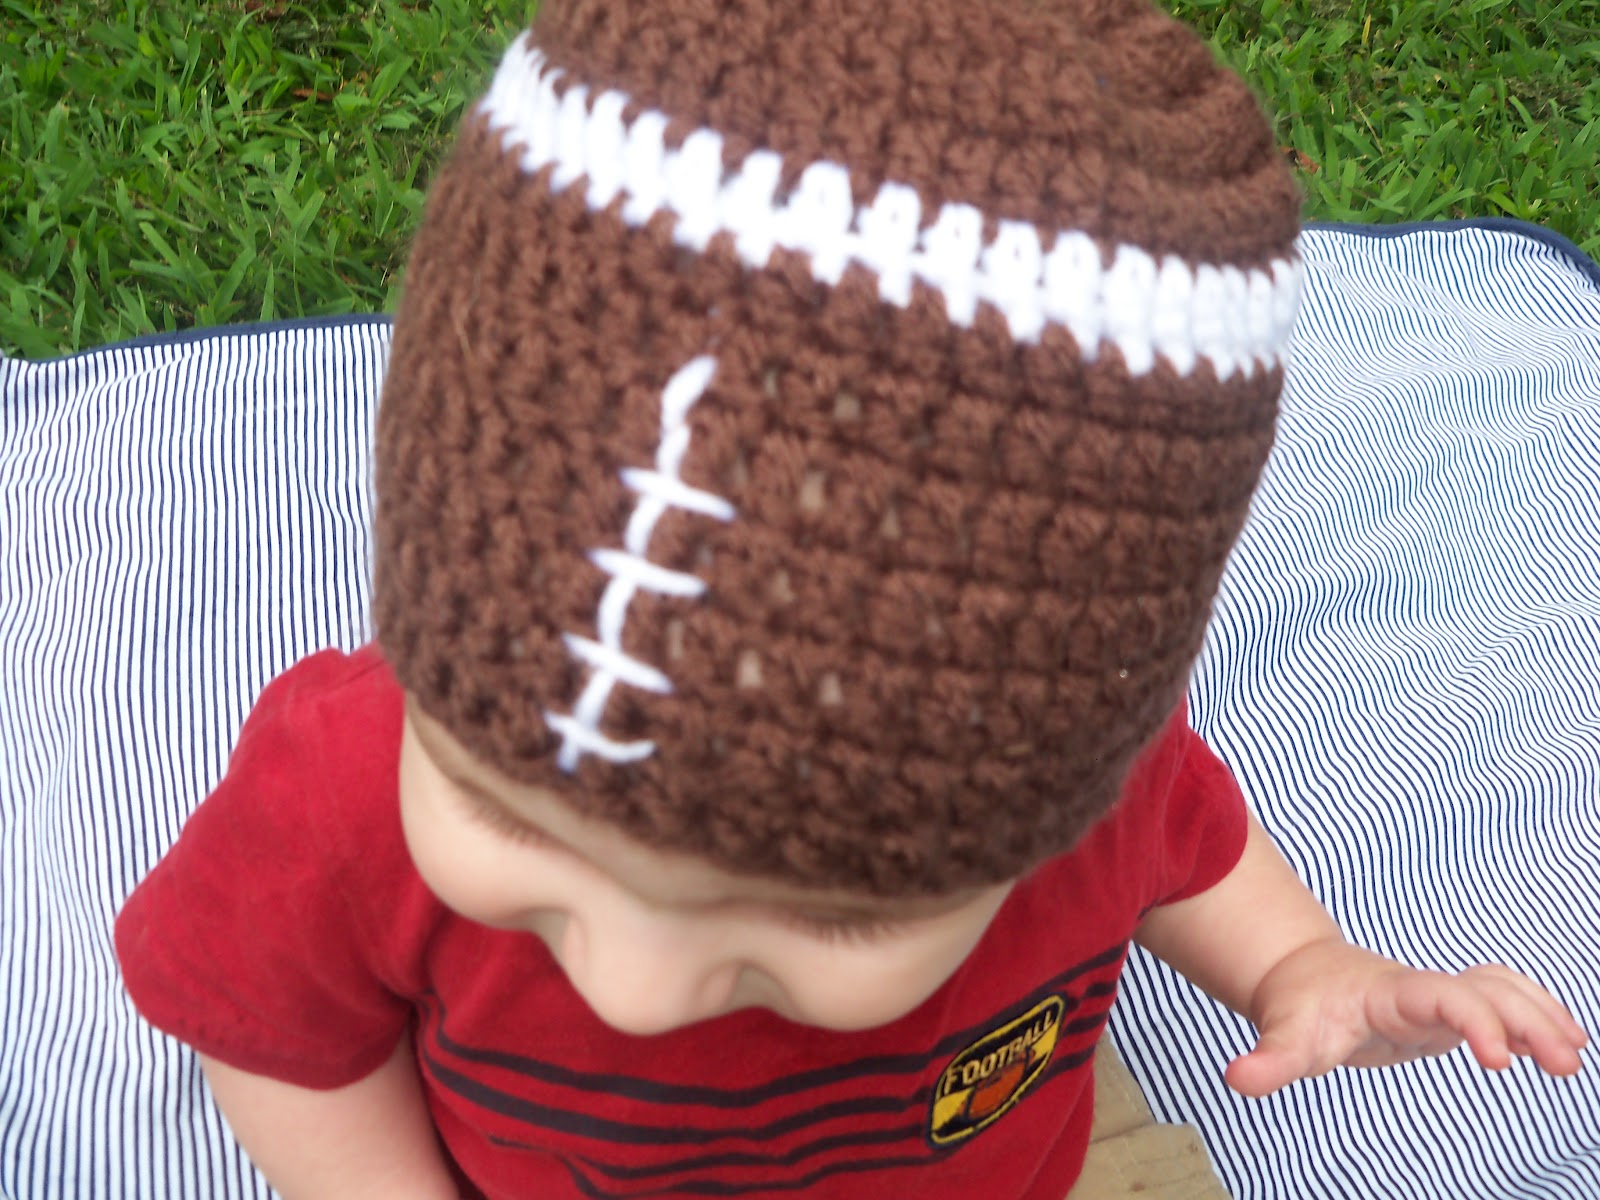 Crochet Jobs : ... www.etsy.com/listing/107322541/crocheted-baby-football-hat-6-months